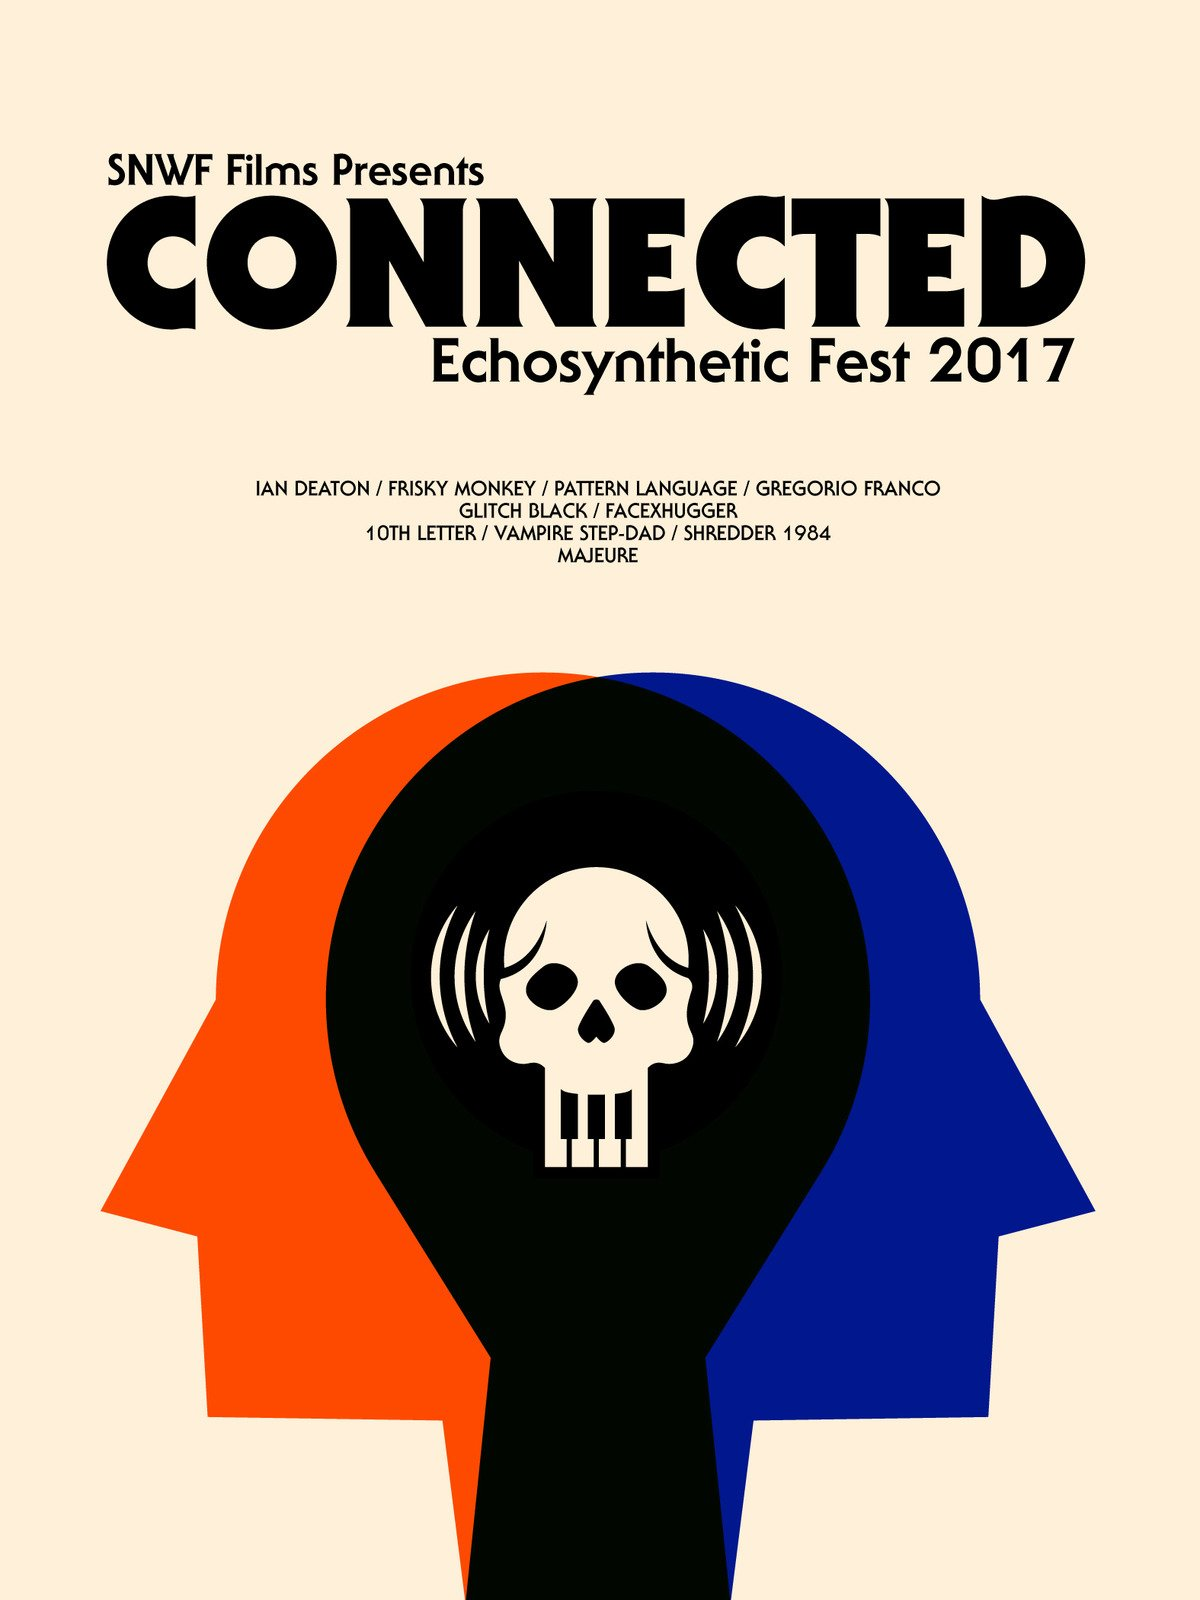 Connected: Echosynthetic Fest 2017